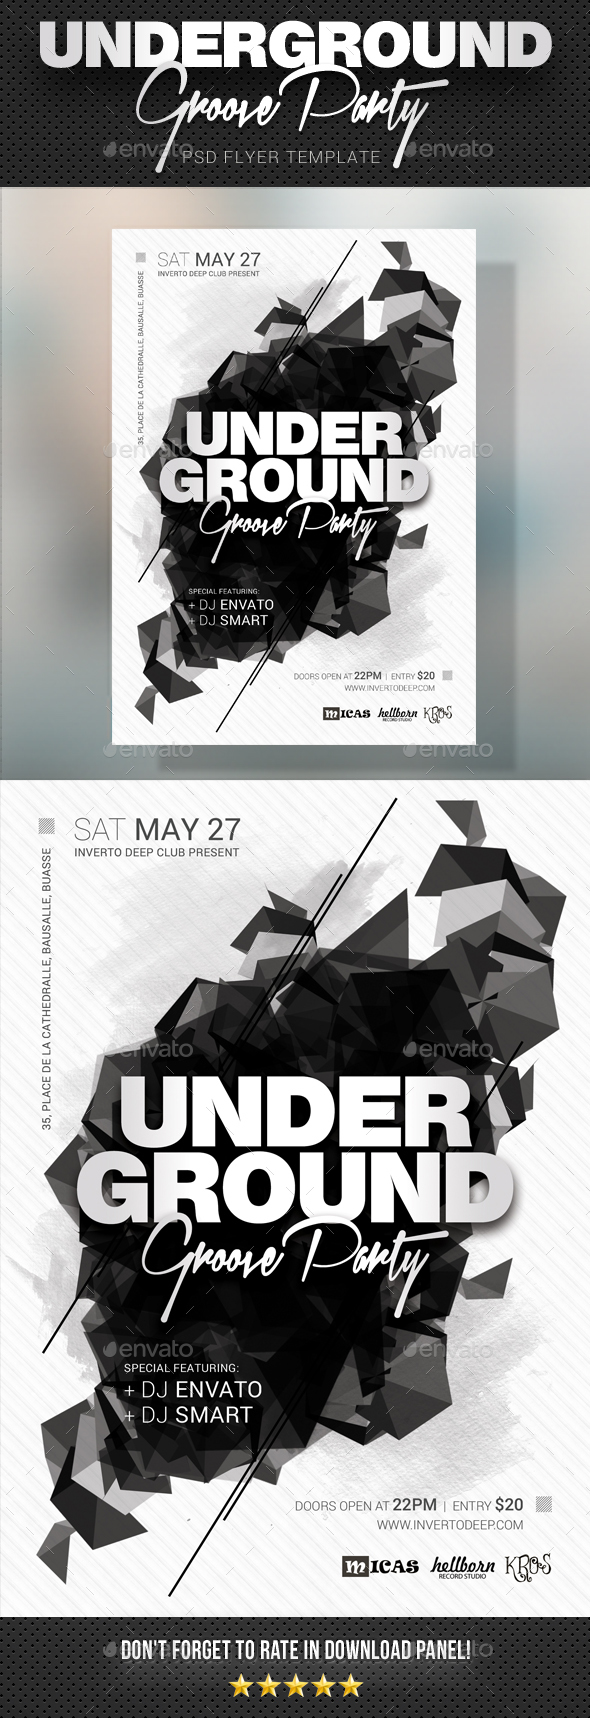 Underground Groove Party Flyer - Clubs & Parties Events